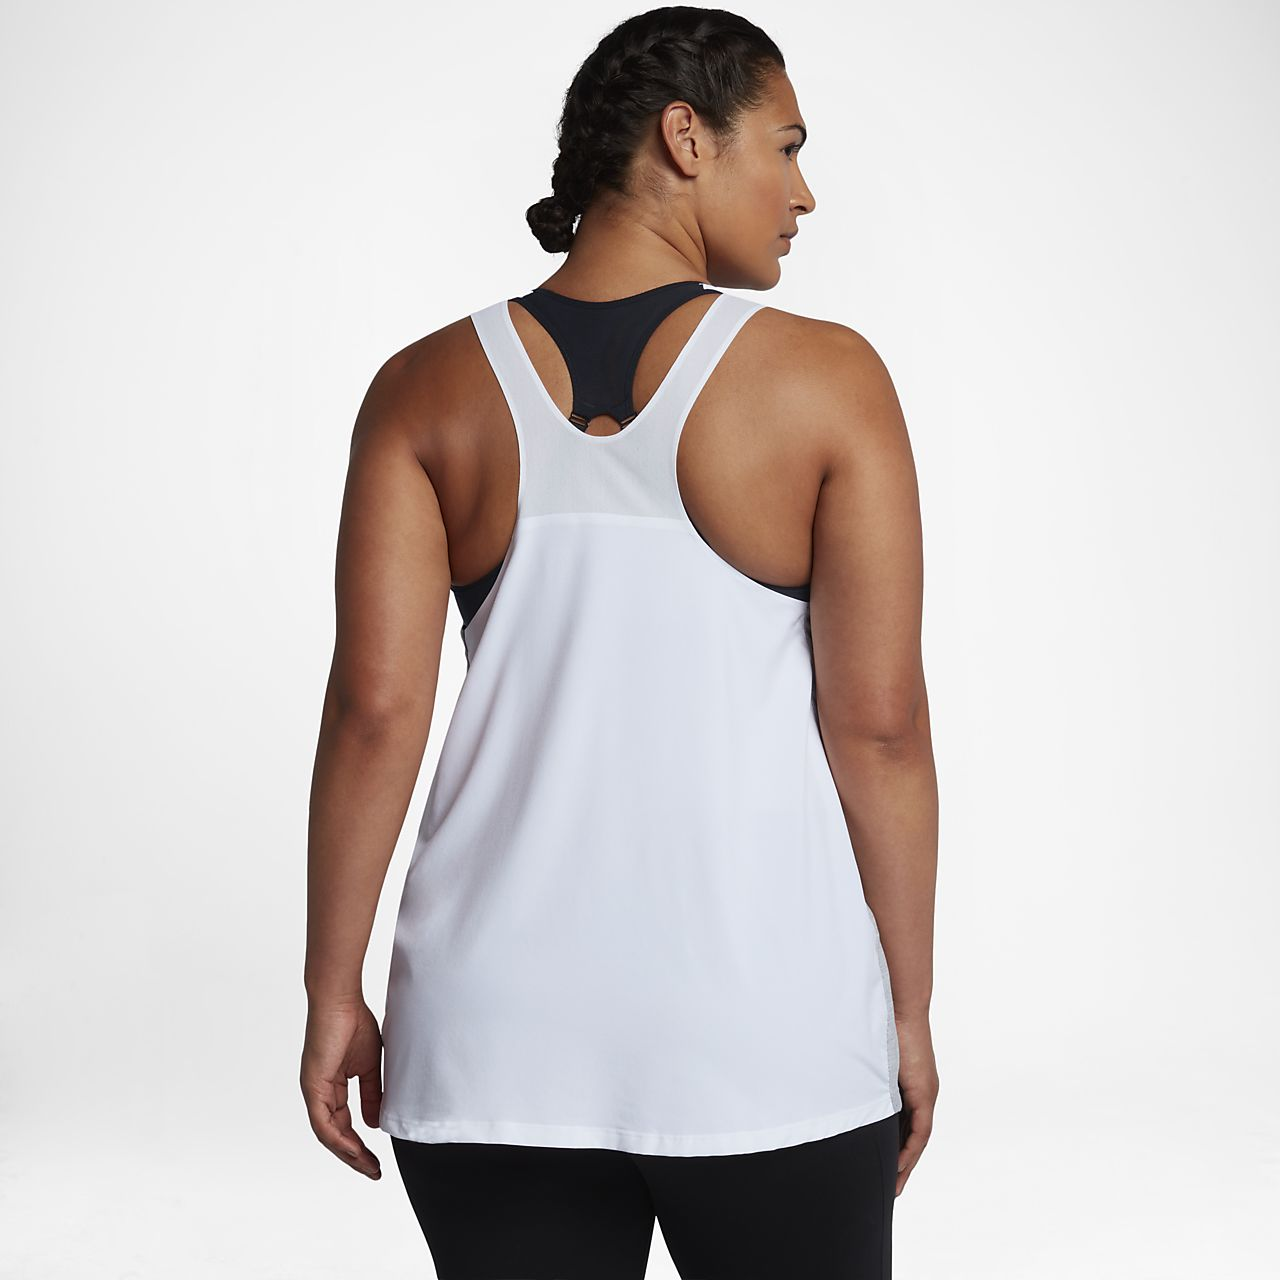 Nike Breathe (Plus Size) Women's Training Tank